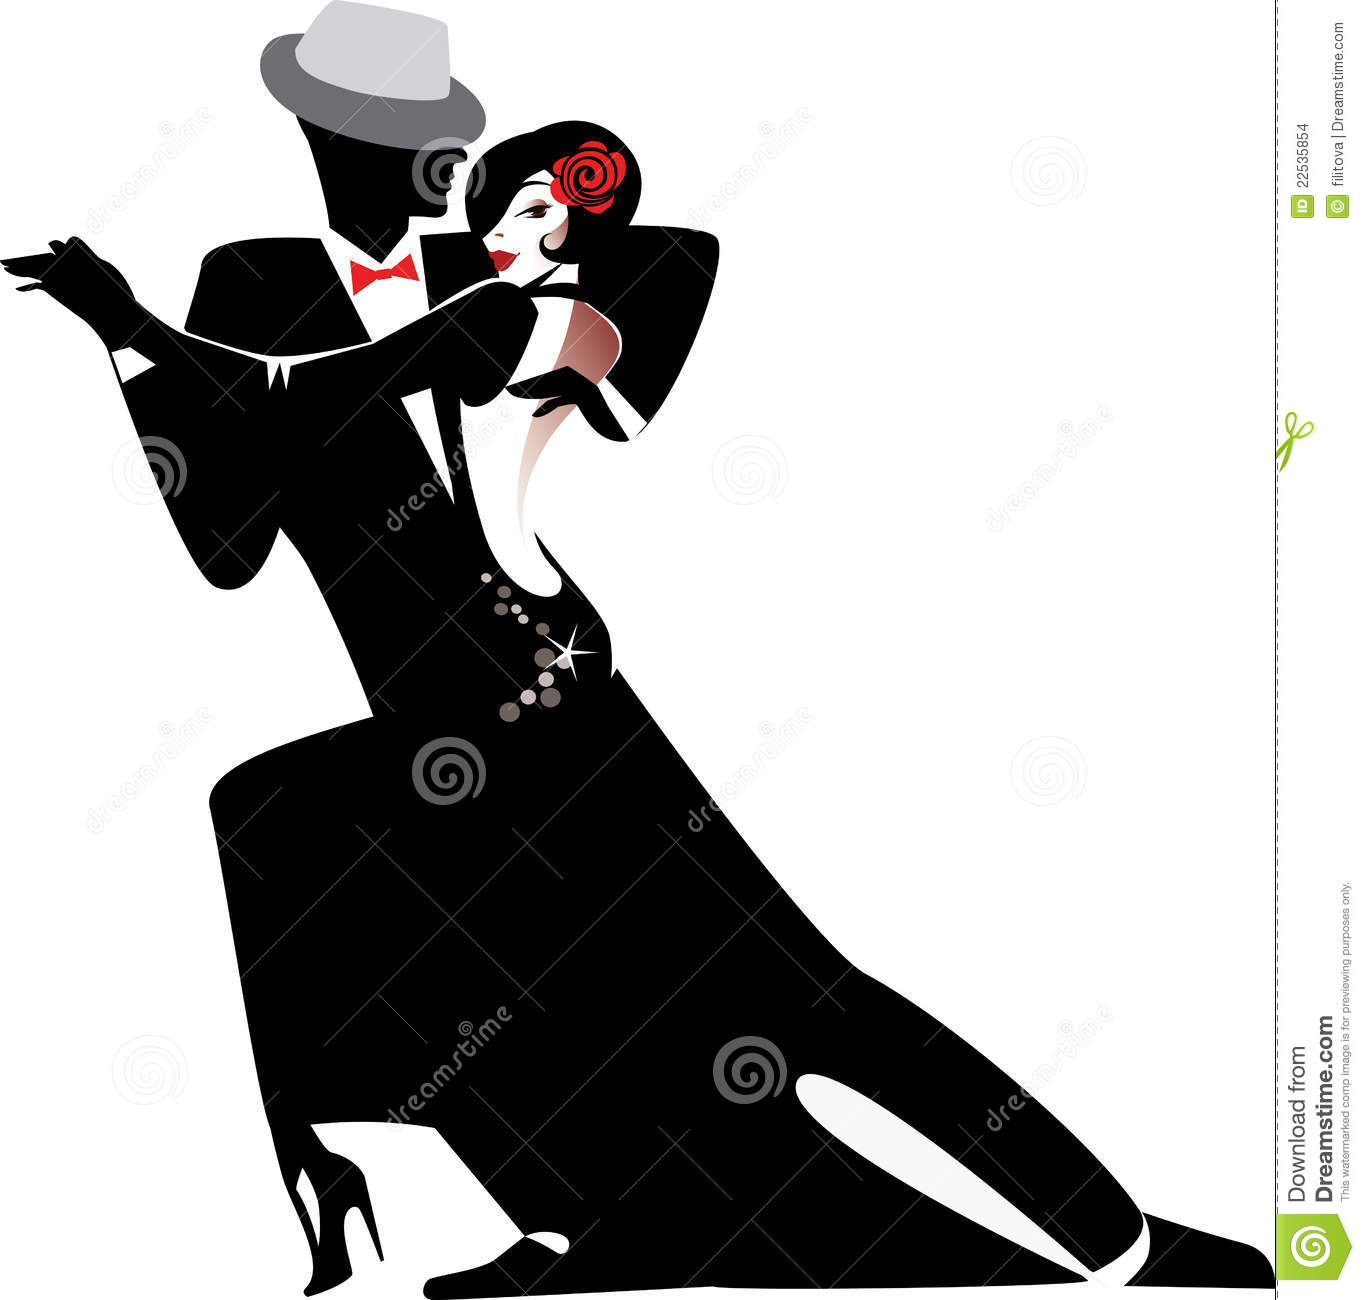 More similar stock images of silhouette of couple dancing tango